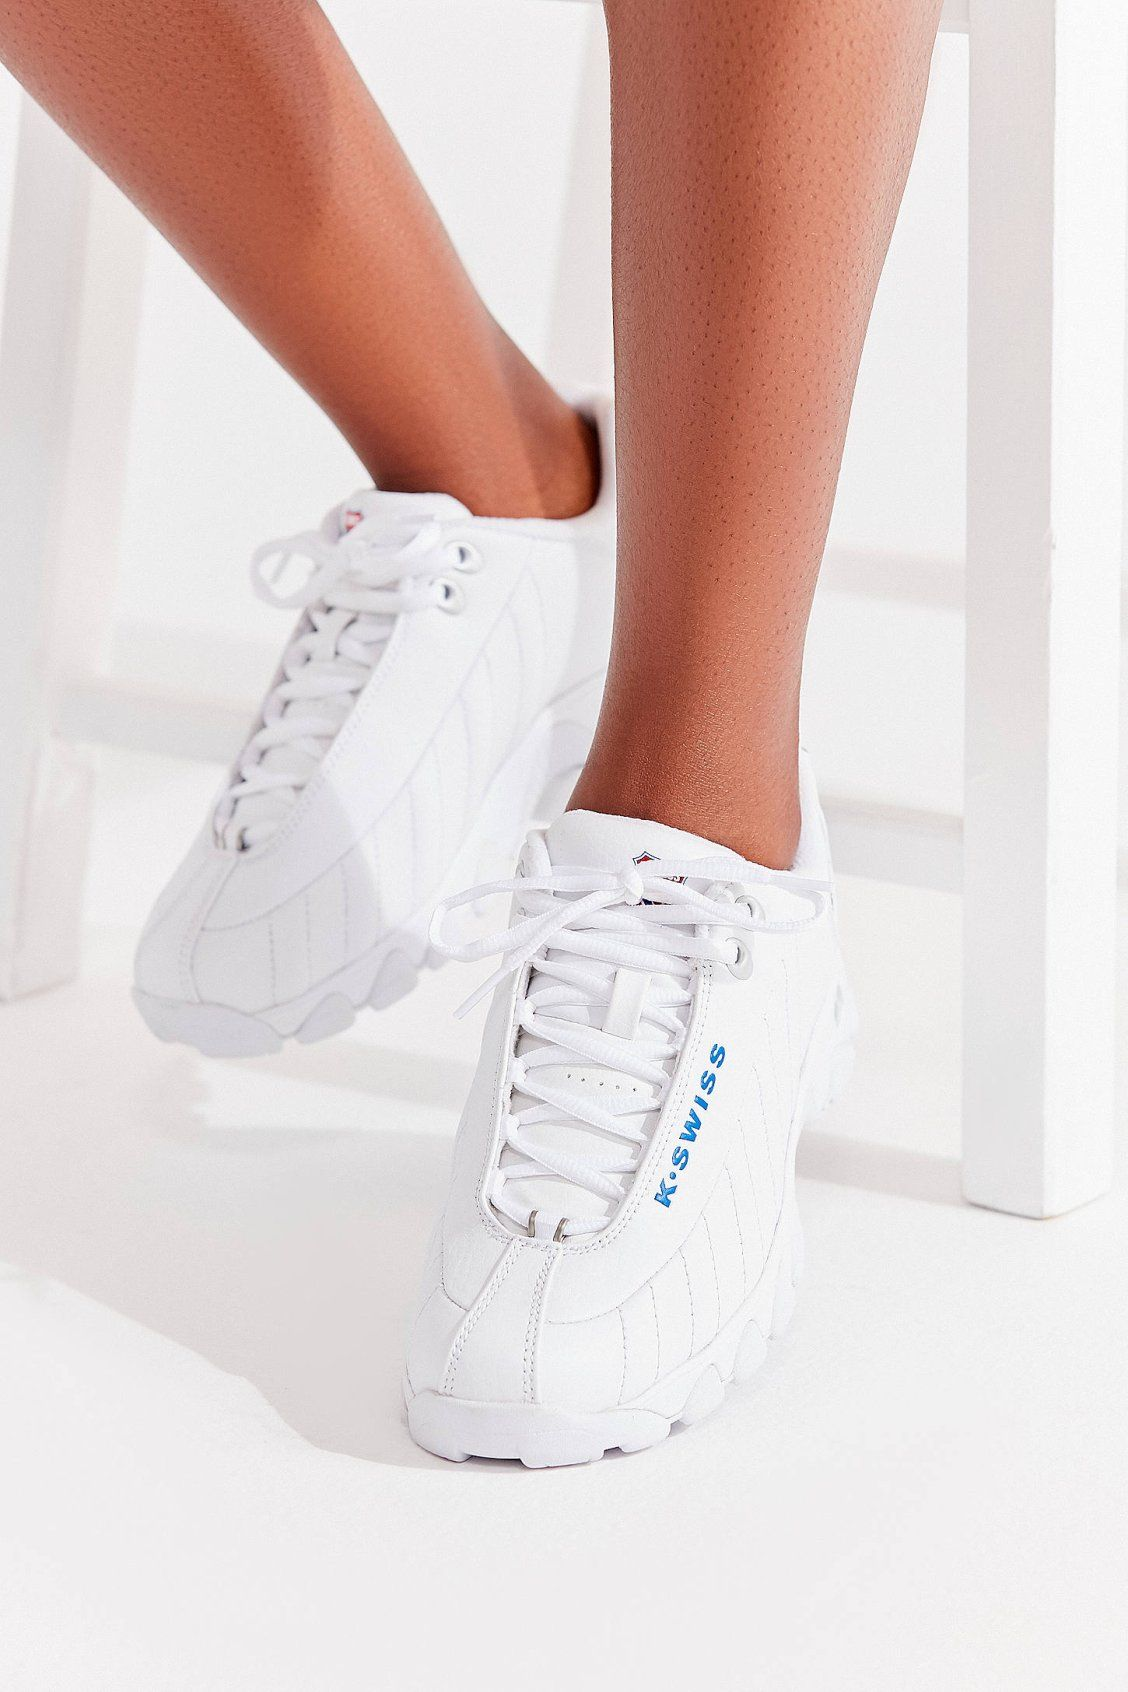 7a8430811 K-Swiss ST-329 Heritage Sneaker in 2019 | Shoes Shoes Shoes | Shoes ...